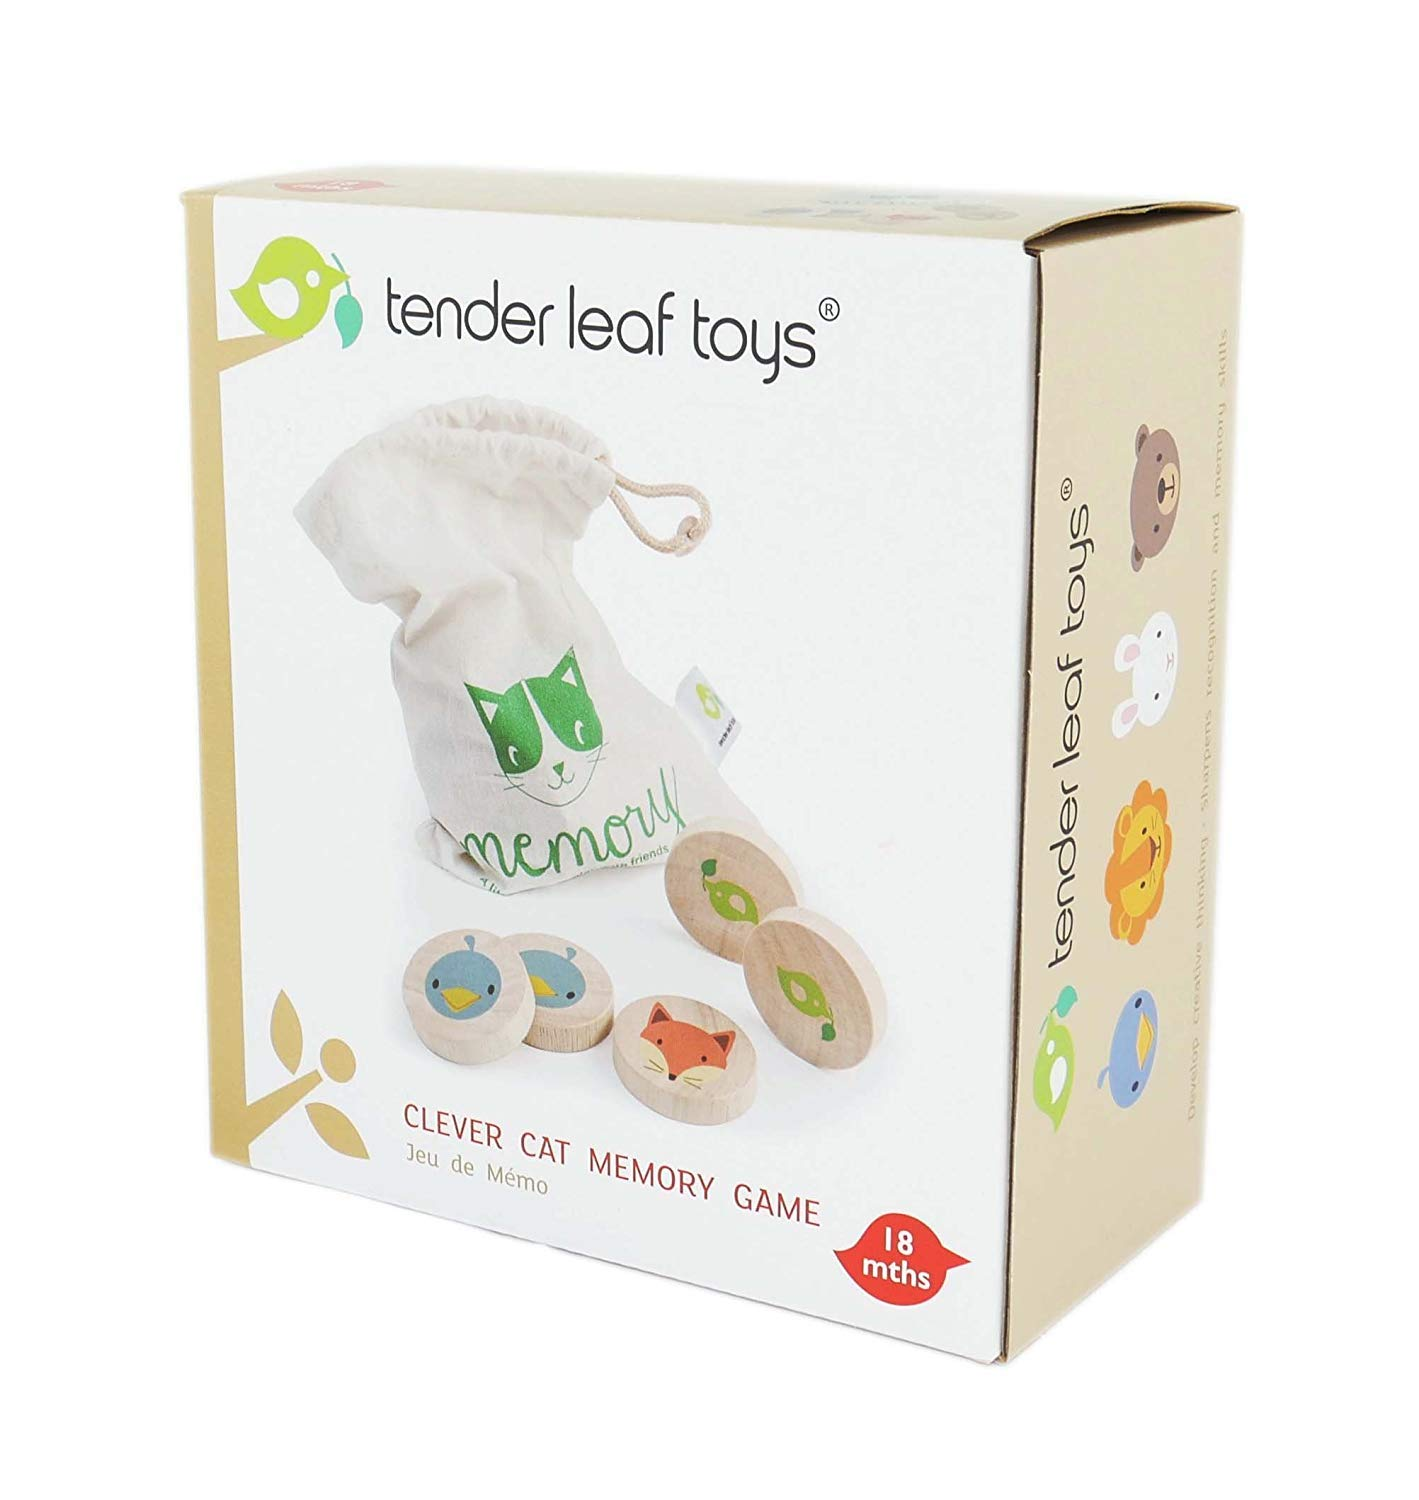 Tender Leaf Toys Clever Cat Memory Game with Canvas Storage Bag - Fun Play While Improving Visual Memory Skills - 18 Months +